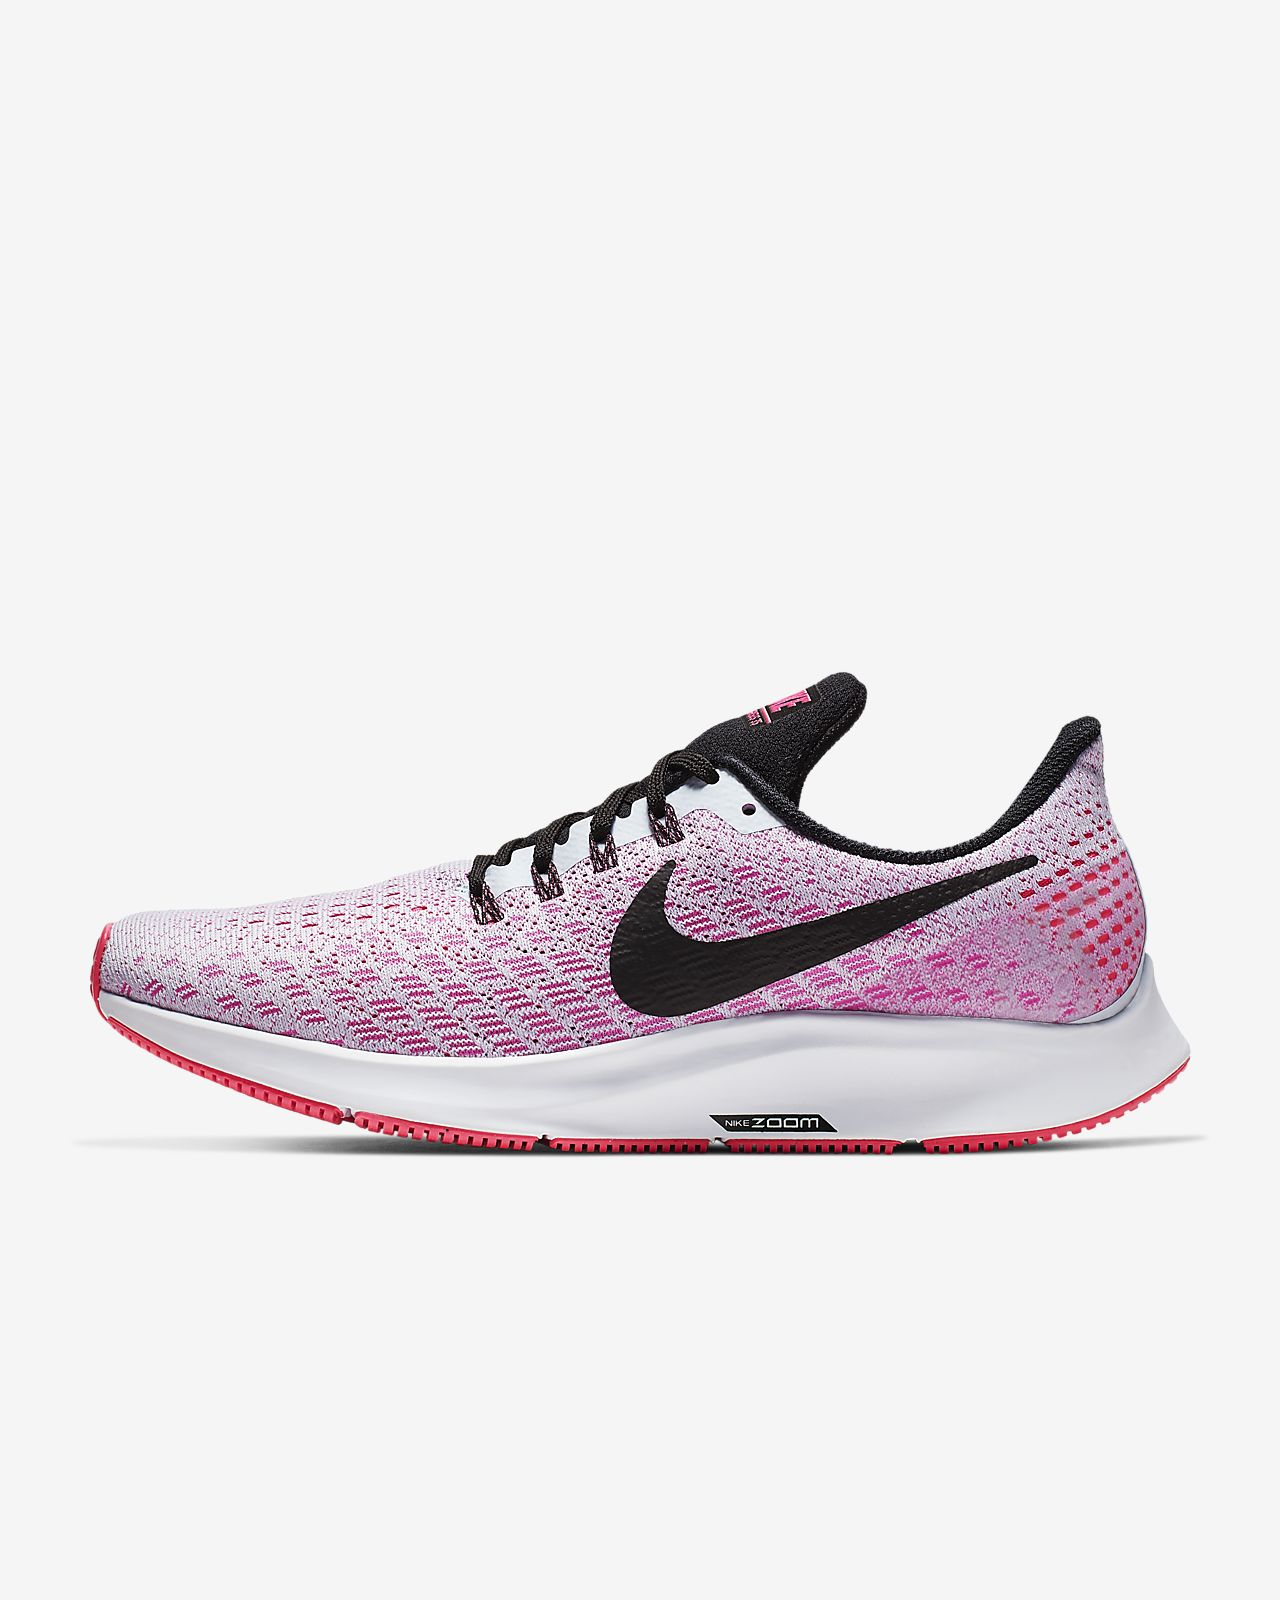 db525340c635 Nike Air Zoom Pegasus 35 Women s Running Shoe. Nike.com